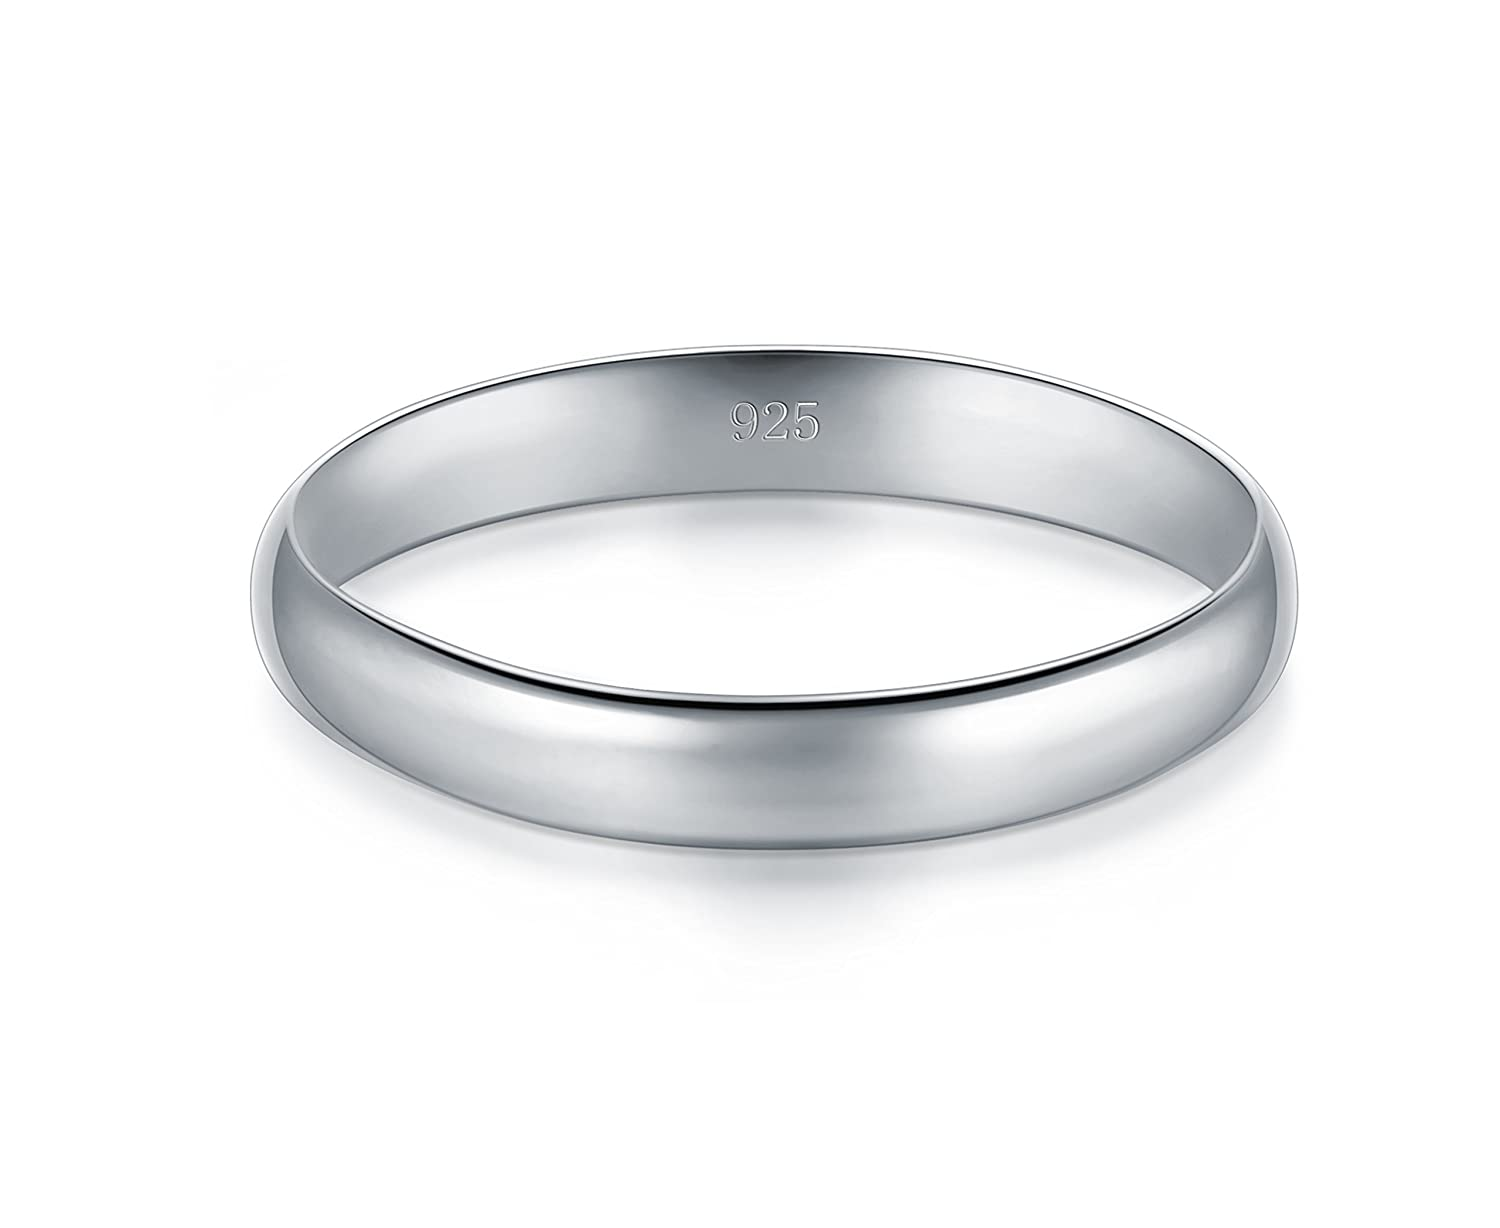 High Polish Plain Dome Tarnish Resistant Comfort Fit Wedding Band 3mm Ring BORUO 925 Sterling Silver Ring